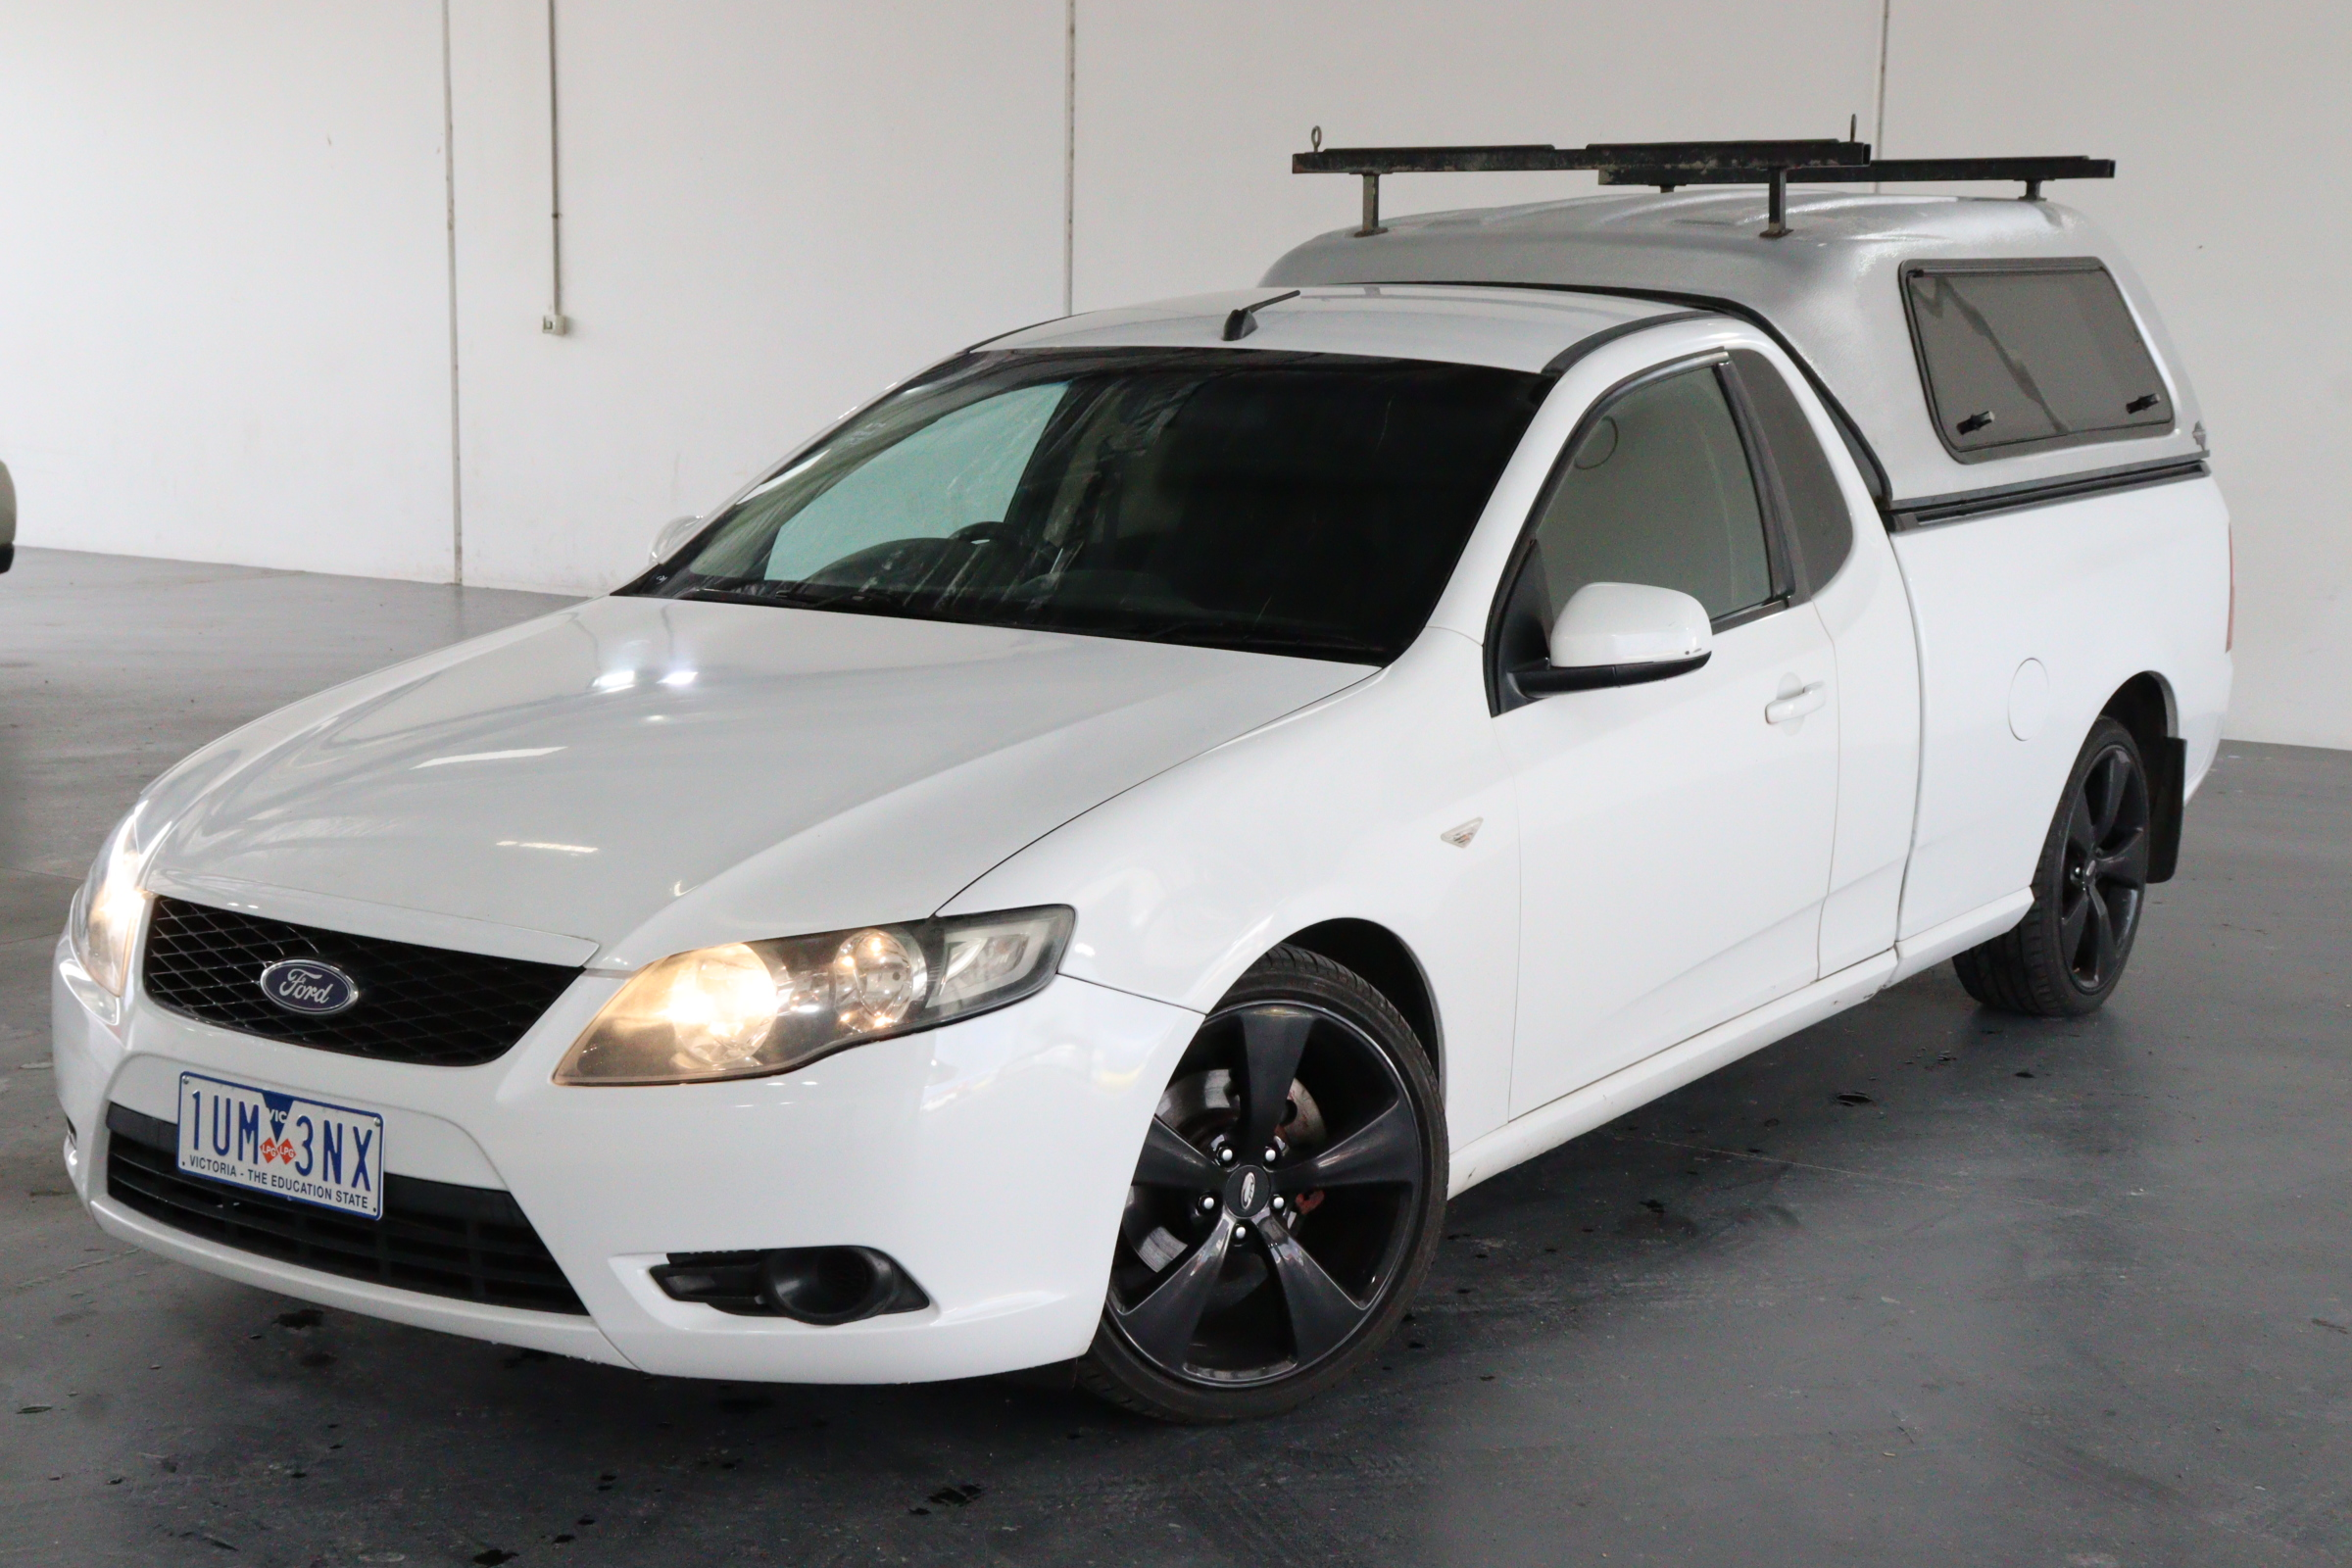 2009 Ford Falcon FG Automatic Ute (WOVR-Inspected)